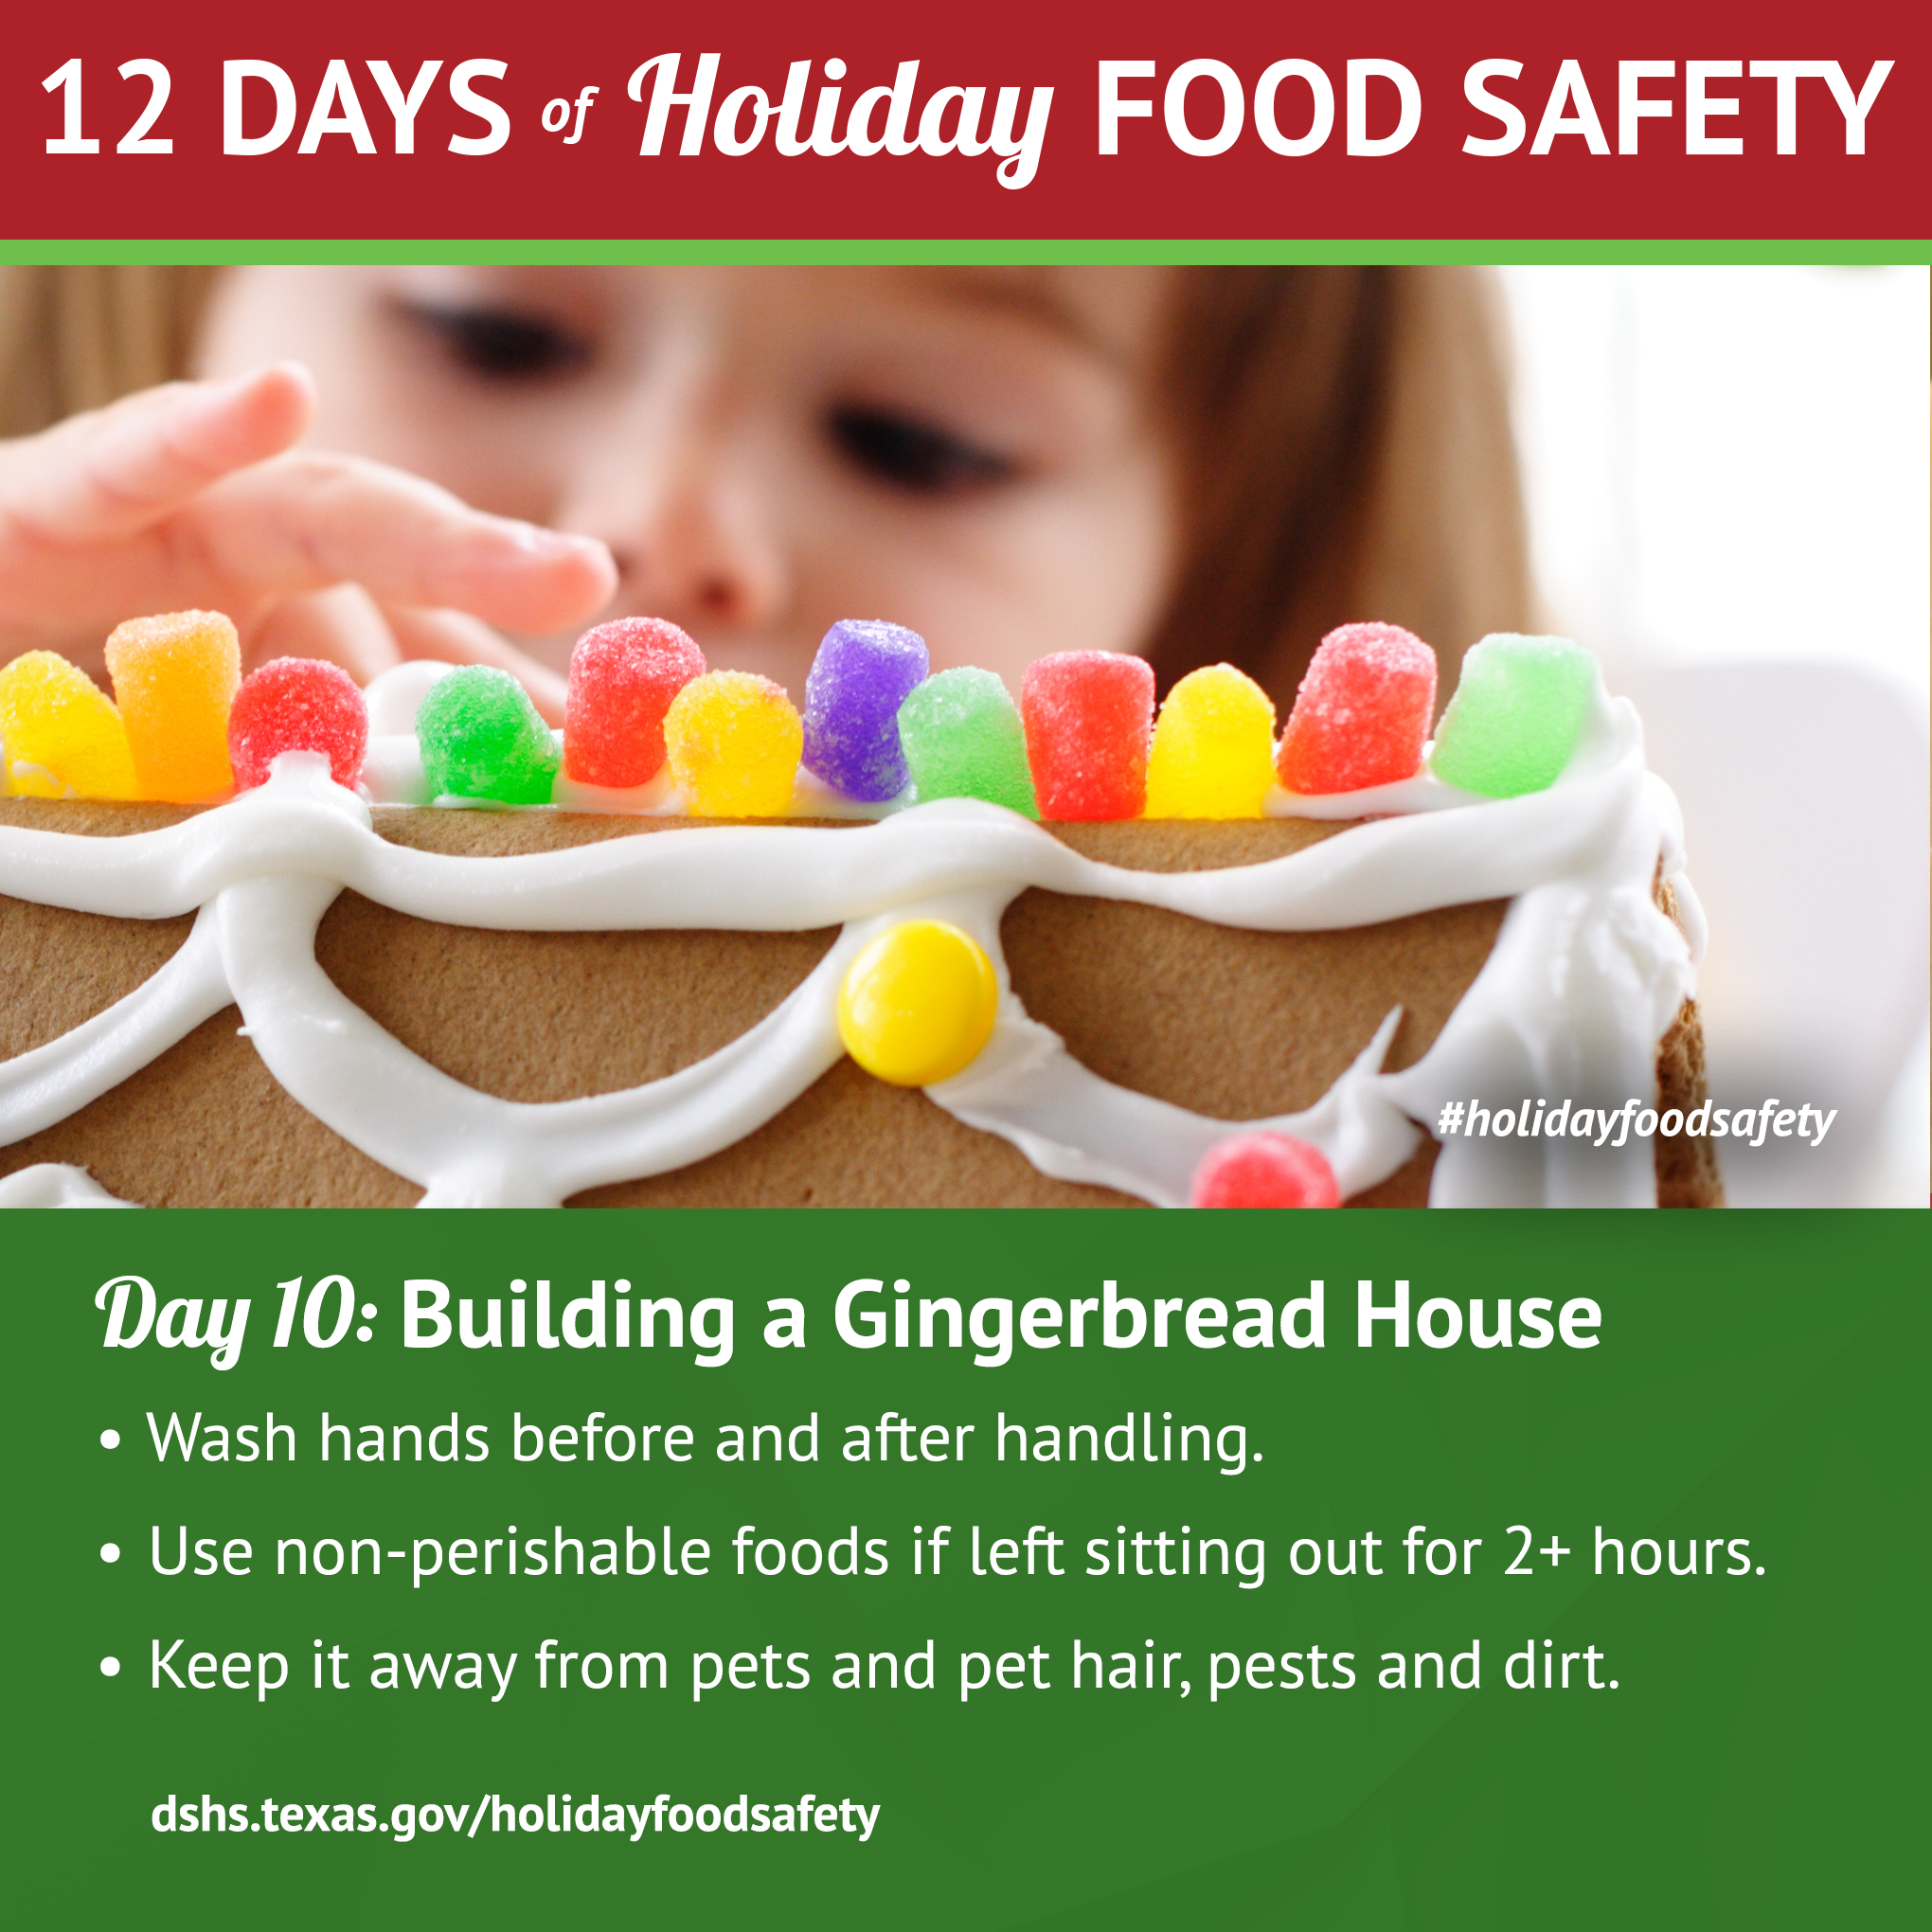 12 days of holiday food safety 12 days of holiday food safety day 10 building a gingerbread house 1betcityfo Choice Image